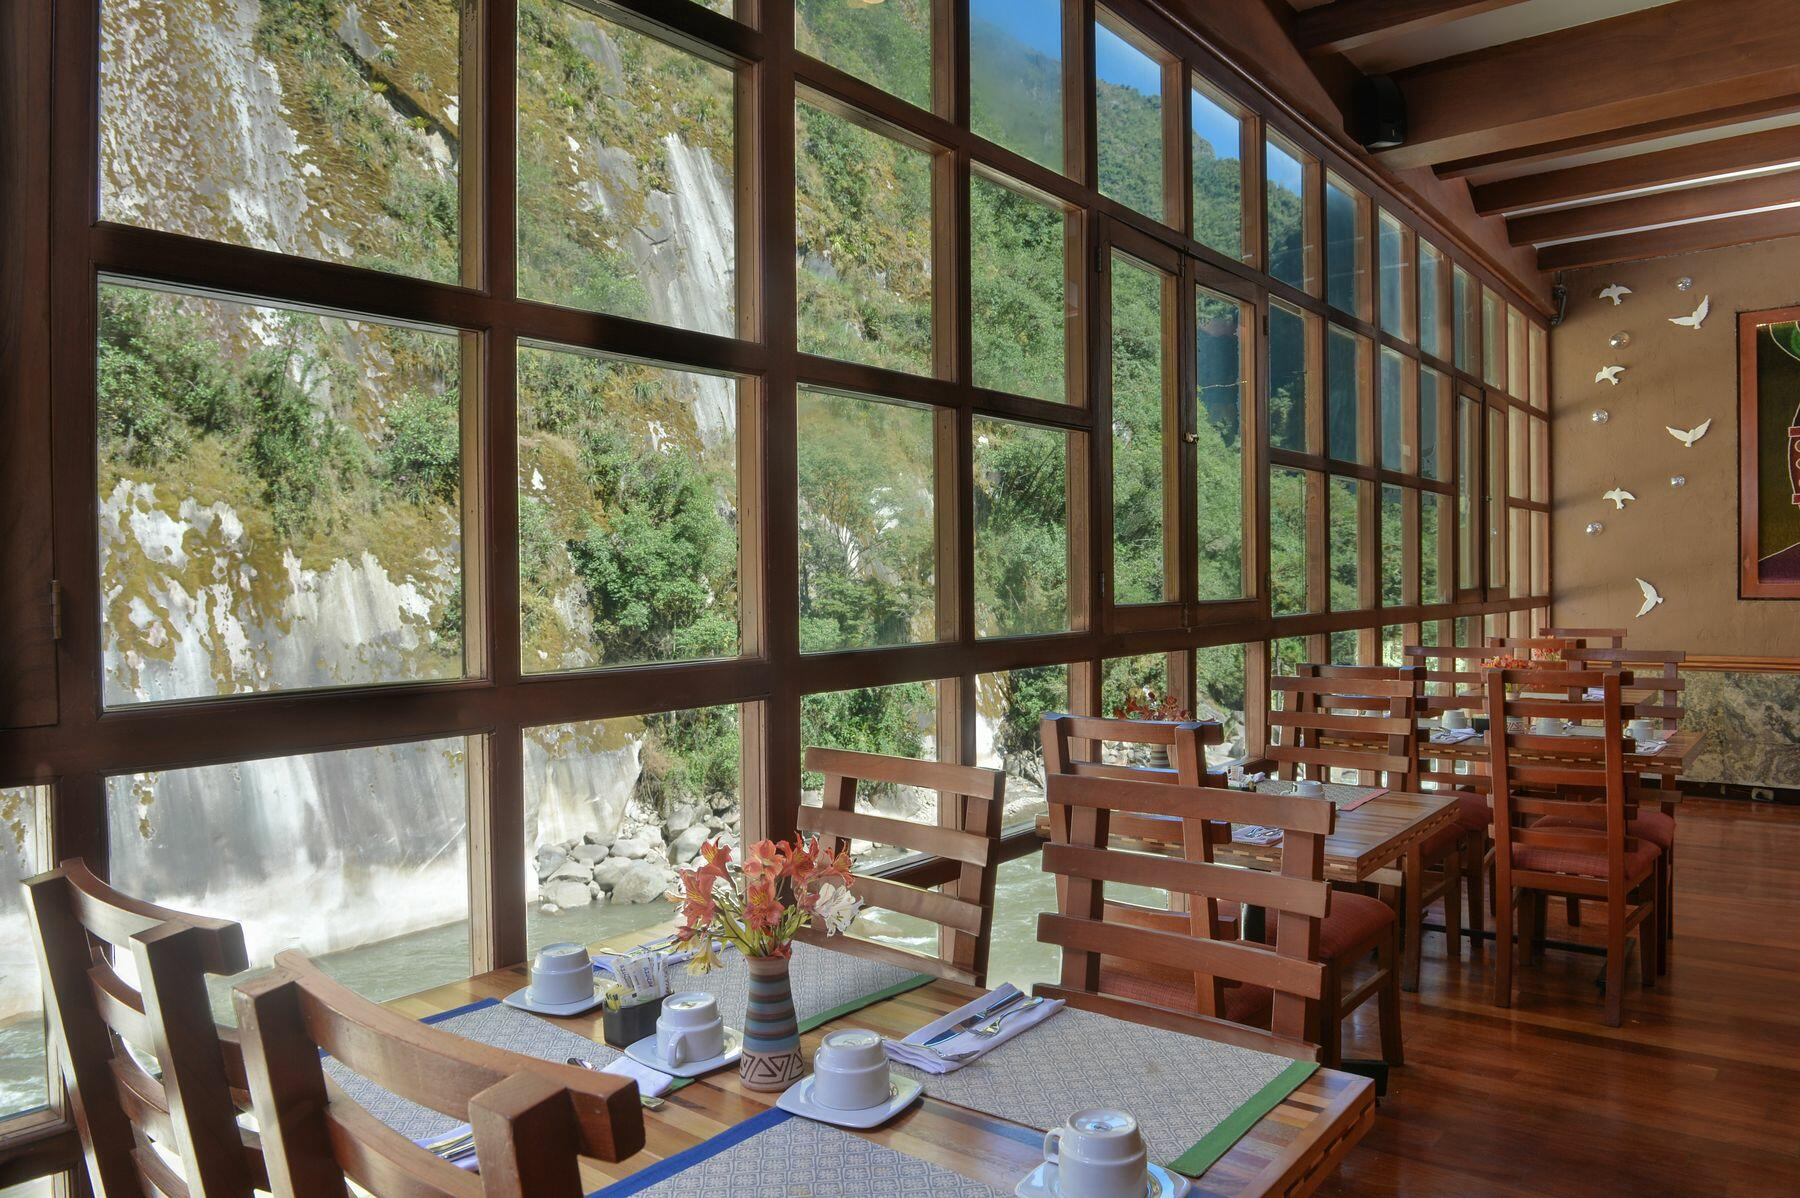 restaurant dining room with tables, chairs and river view